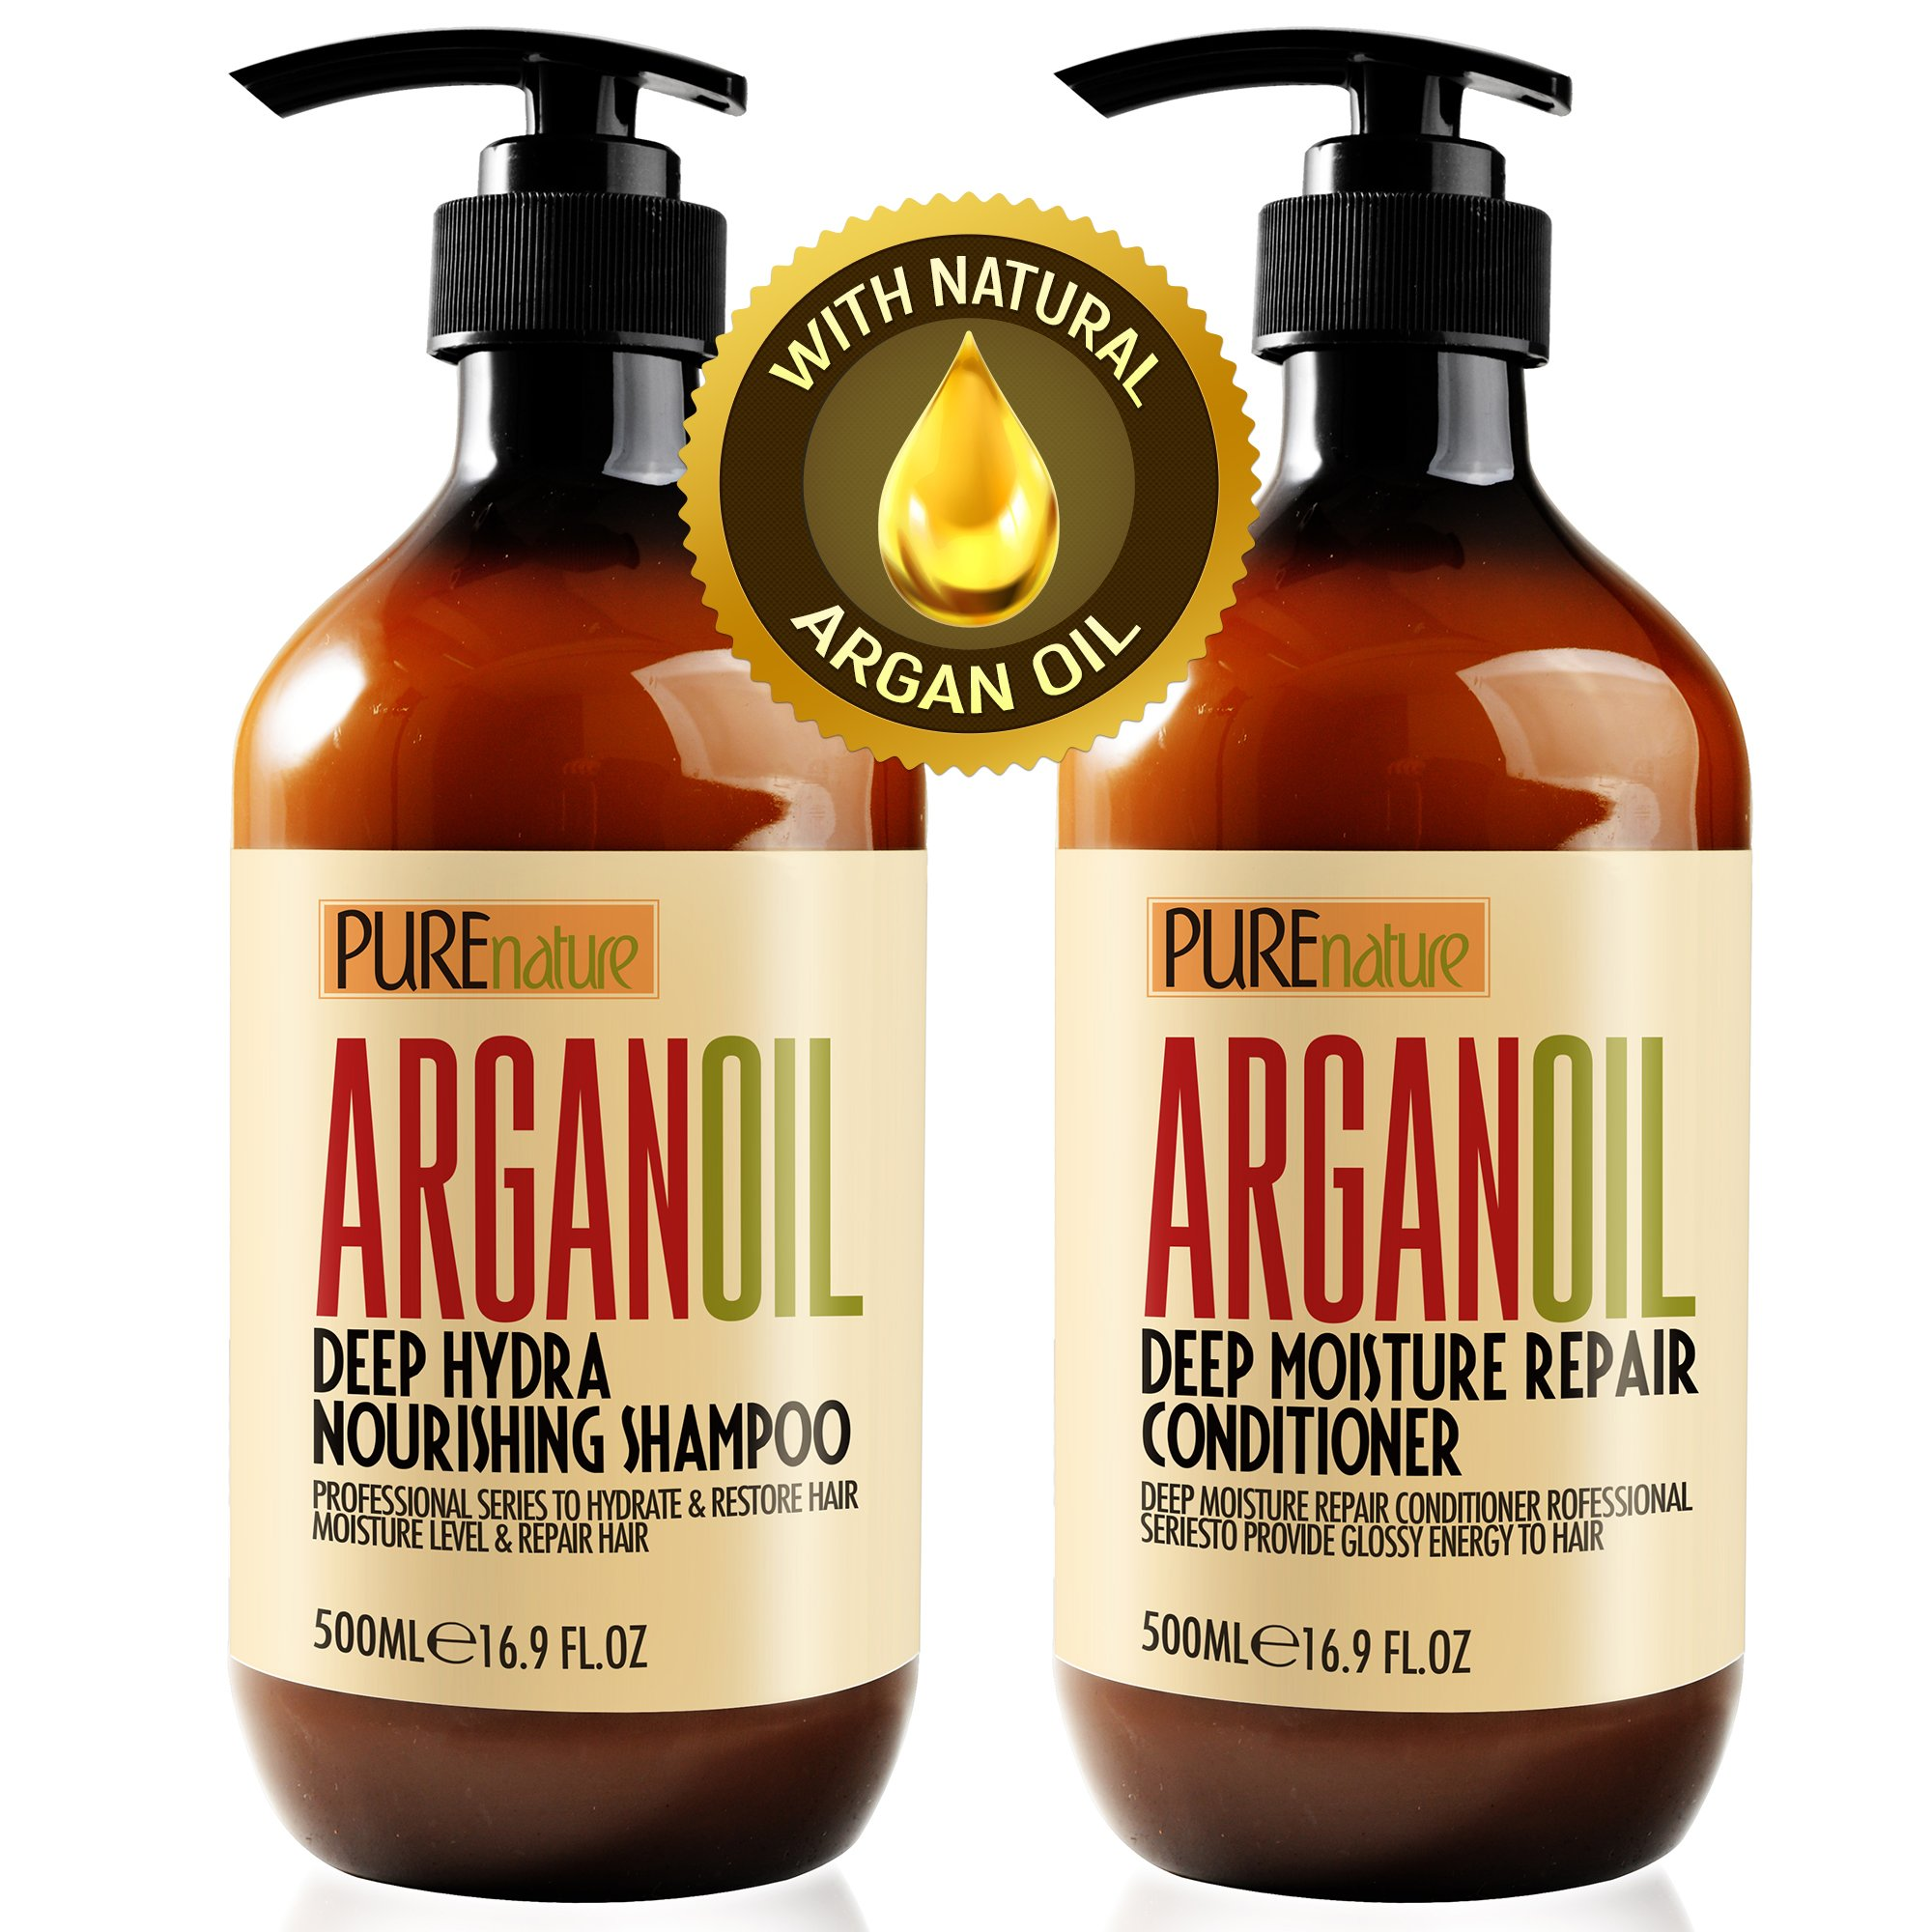 Moroccan Argan Oil Shampoo and Conditioner SLS Sulfate Free Organic Gift Set - Best for Damaged, Dry, Curly or Frizzy Hair - Thickening for Fine/Thin Hair, Safe for Color and Keratin Treated Hair by Pure Nature Lux Spa